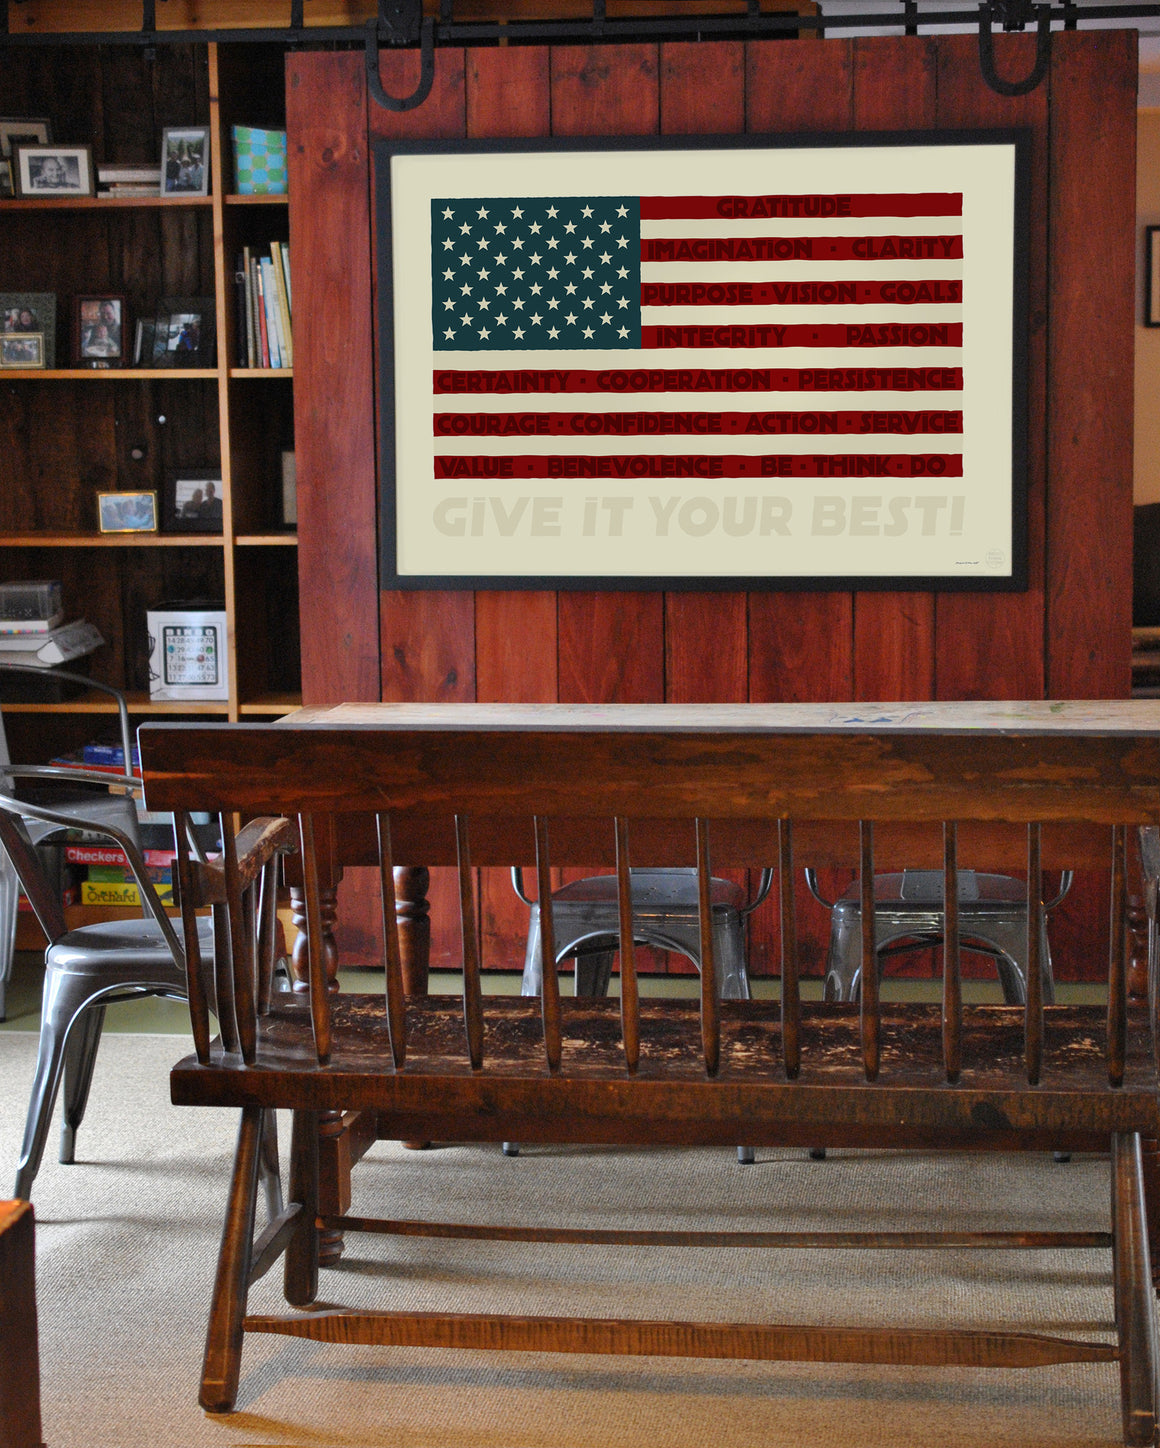 "Give It Your Best Flag Art Print 36"" x 53"" Framed Wall Poster"